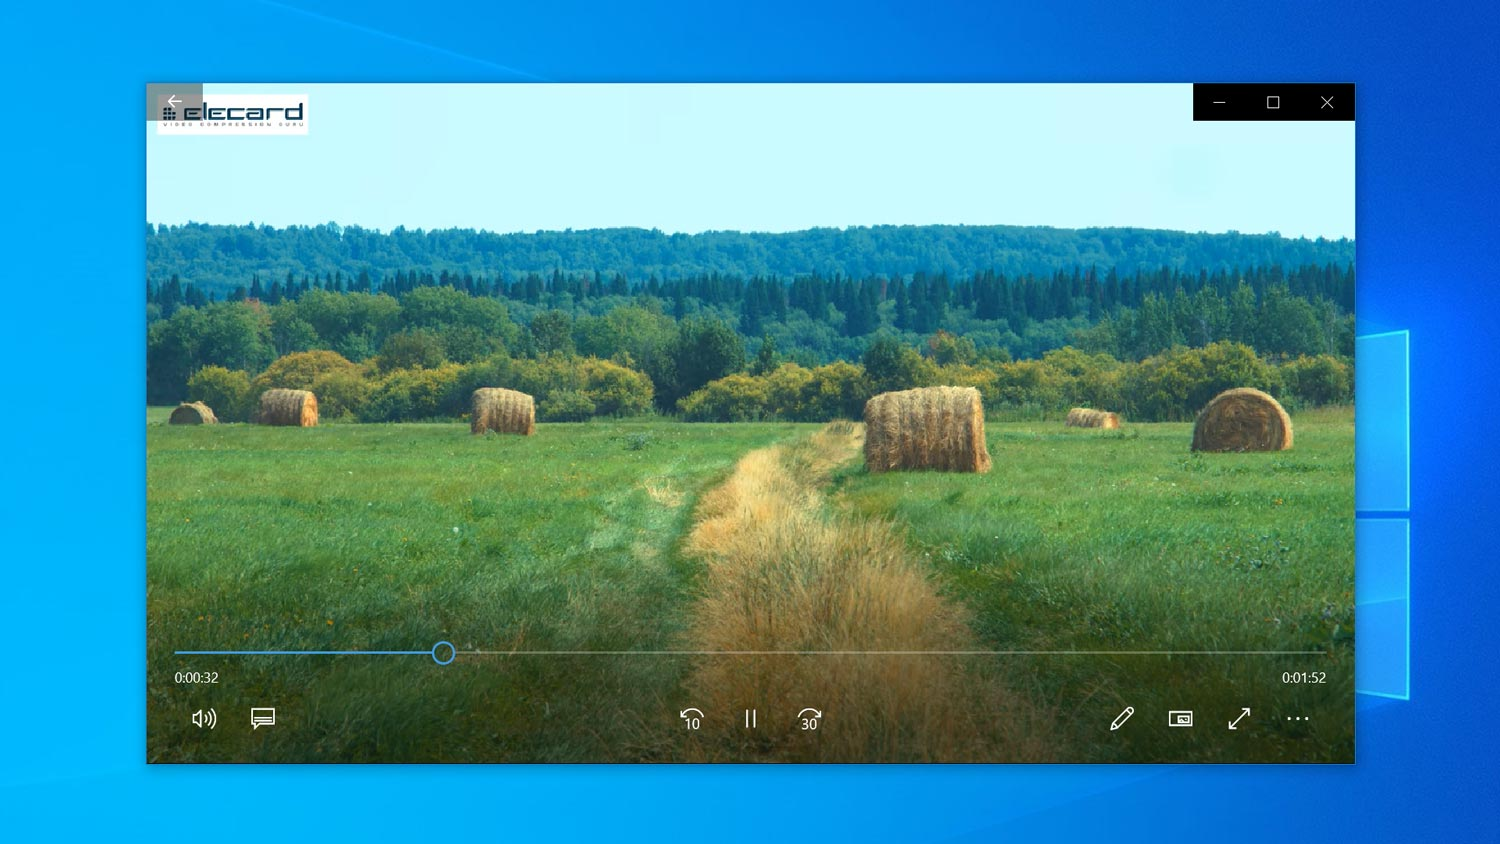 How to Play AV1 Videos in Windows 10 With the Free AV1 Codec